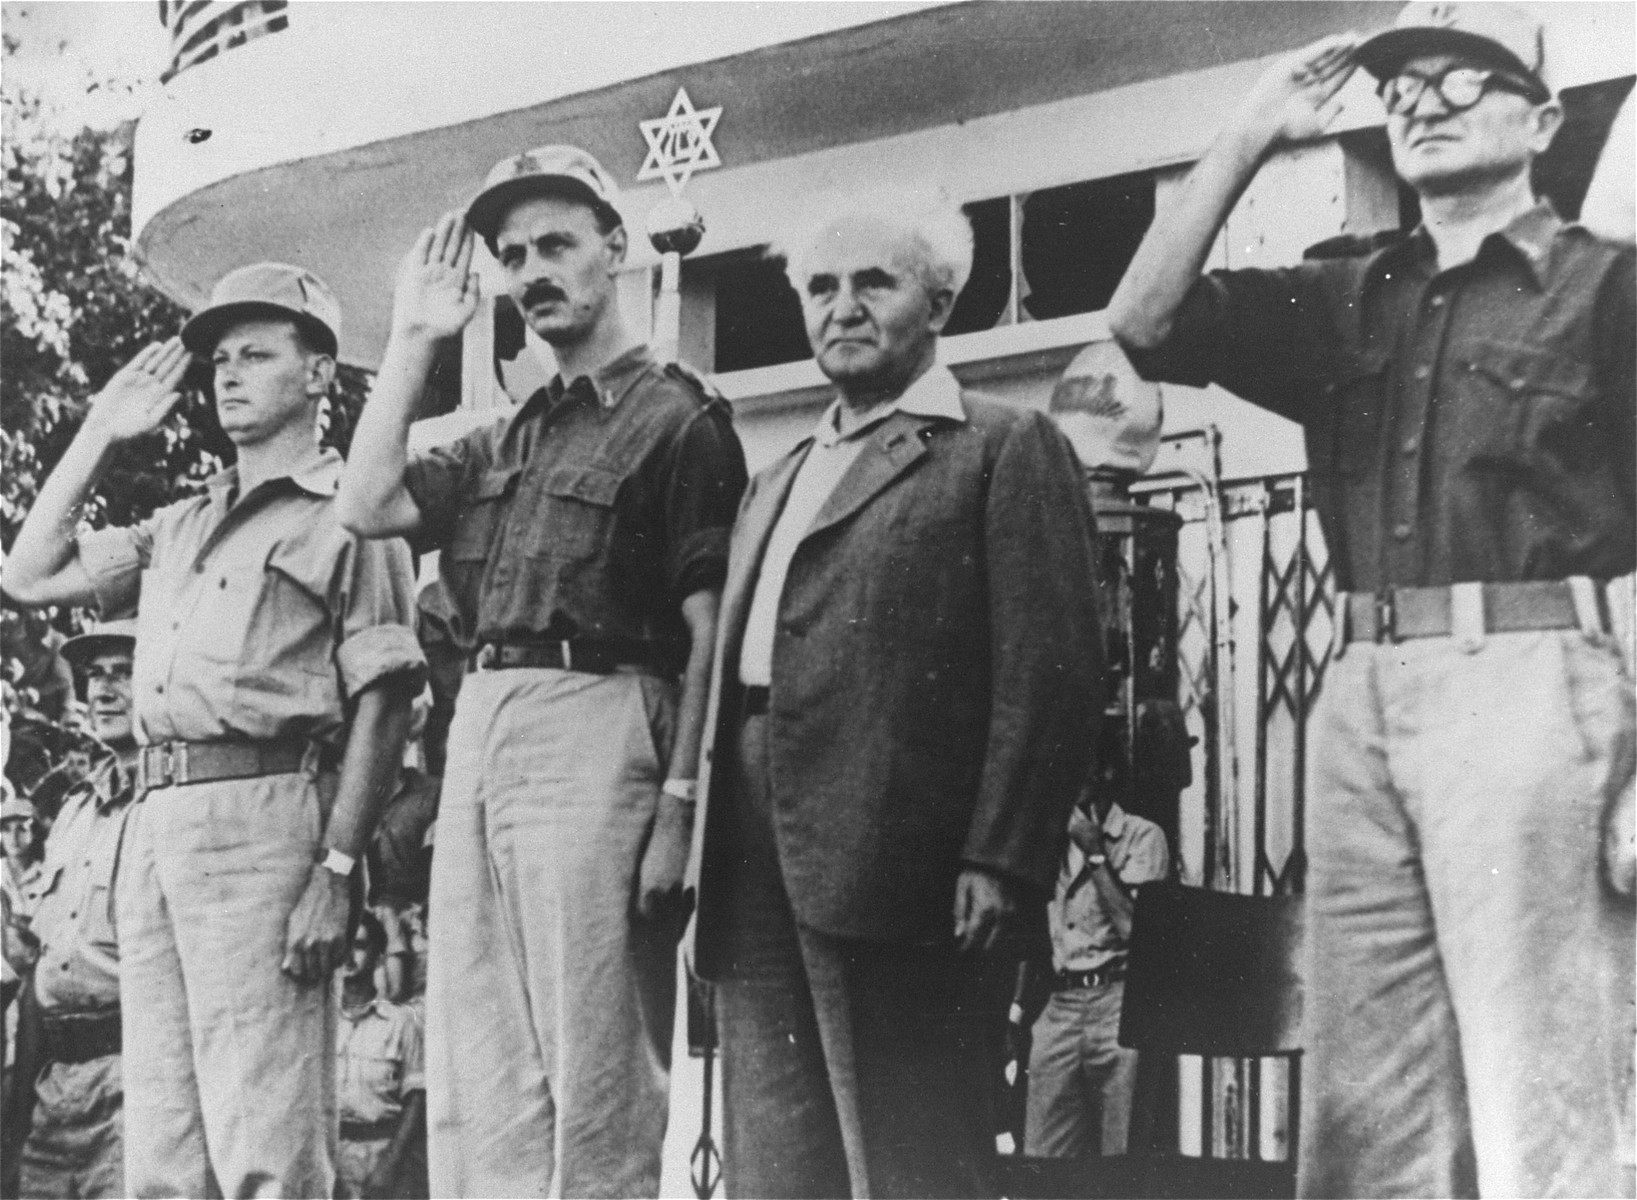 David Ben-Gurion, the Prime Minister of Israel, inspects troops in Tel Aviv along with General Yigal Allon (far left) and General Yigal Yadin (second from the left).